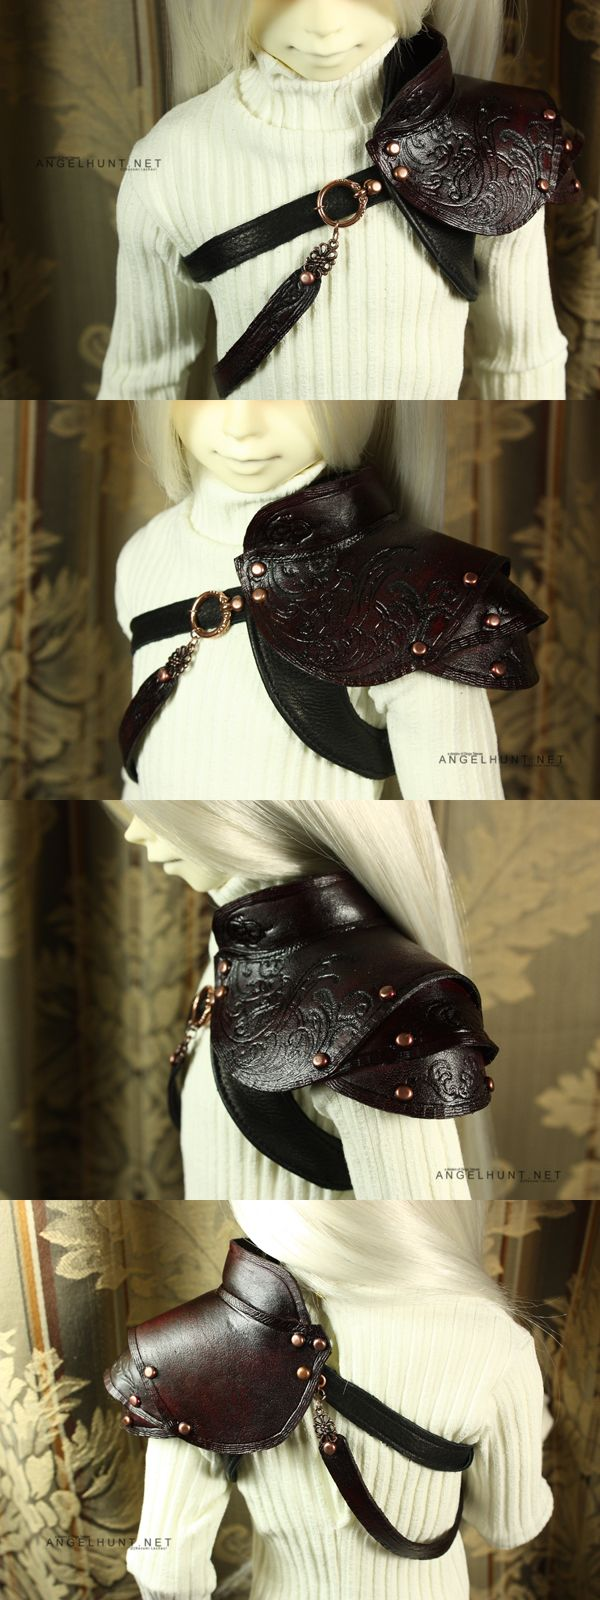 Scrolled Pauldron by Nezumi-chuu.deviantart.com on @deviantART ...I wanna learn how to make these!!